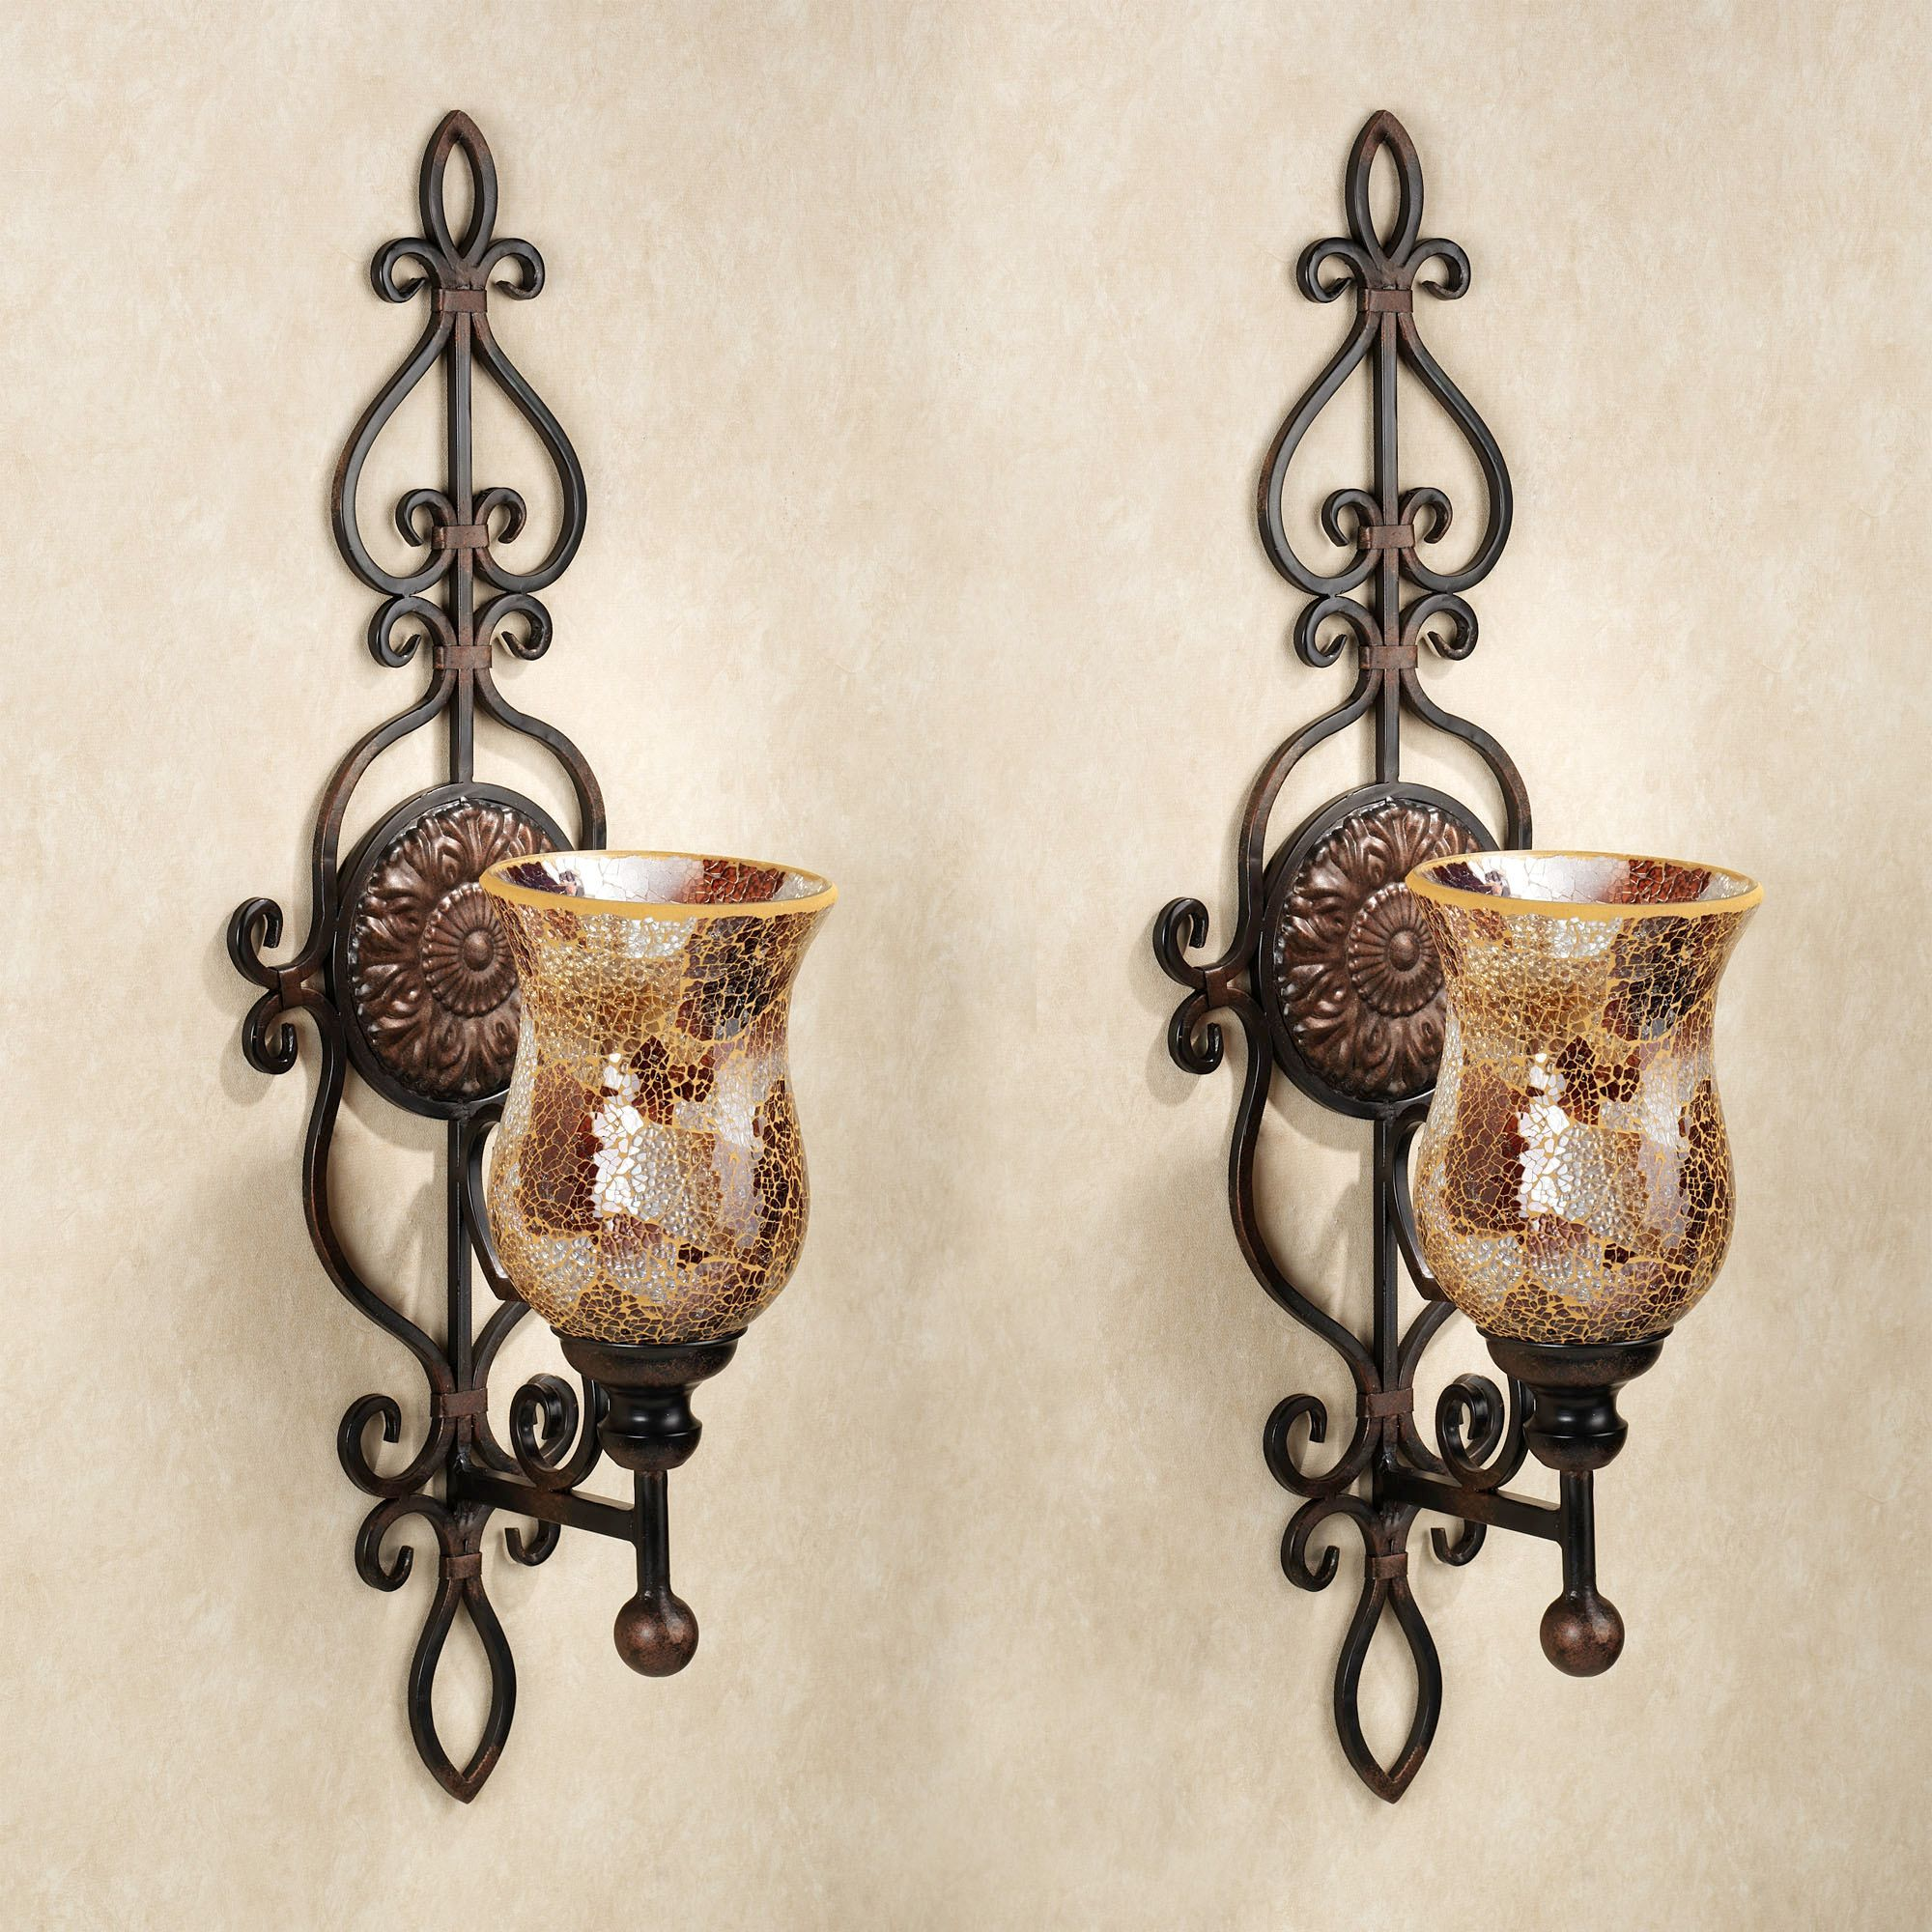 Leyanna mosaic aged brown wall sconce pair wall sconces leyanna mosaic aged brown wall sconce pair amipublicfo Gallery